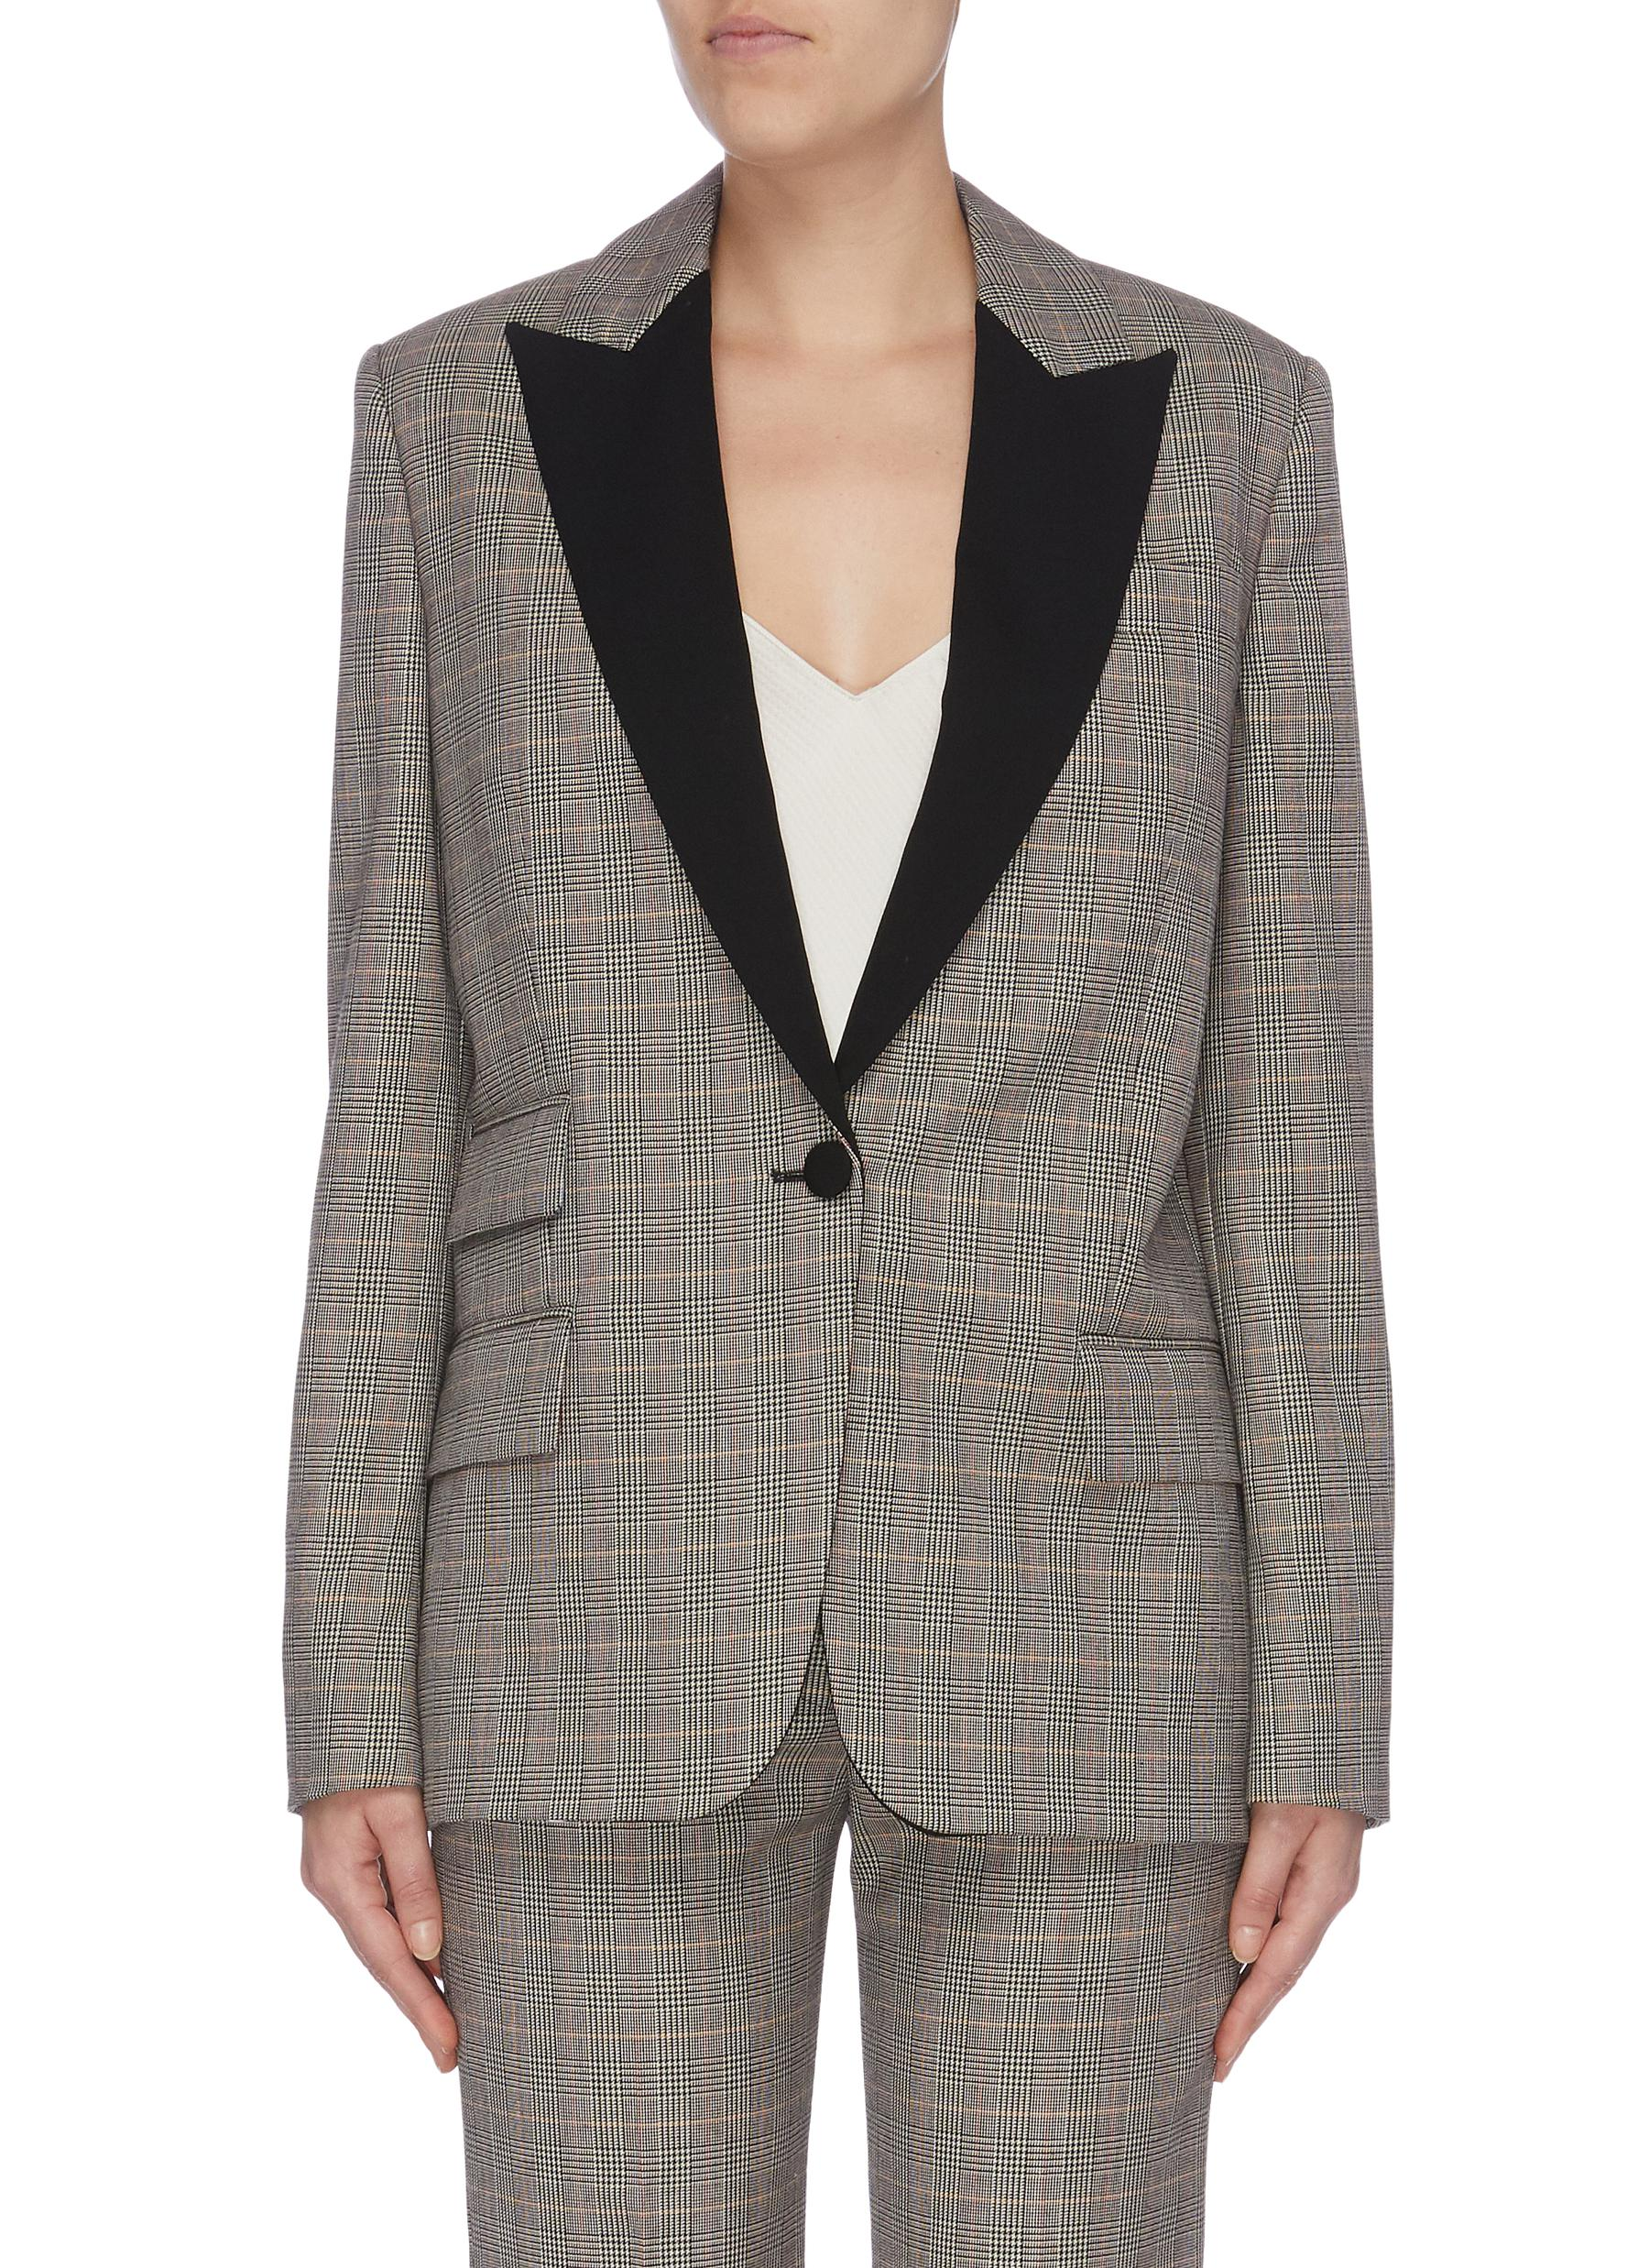 Contrast peaked lapel houndstooth check plaid blazer by Stella Mccartney